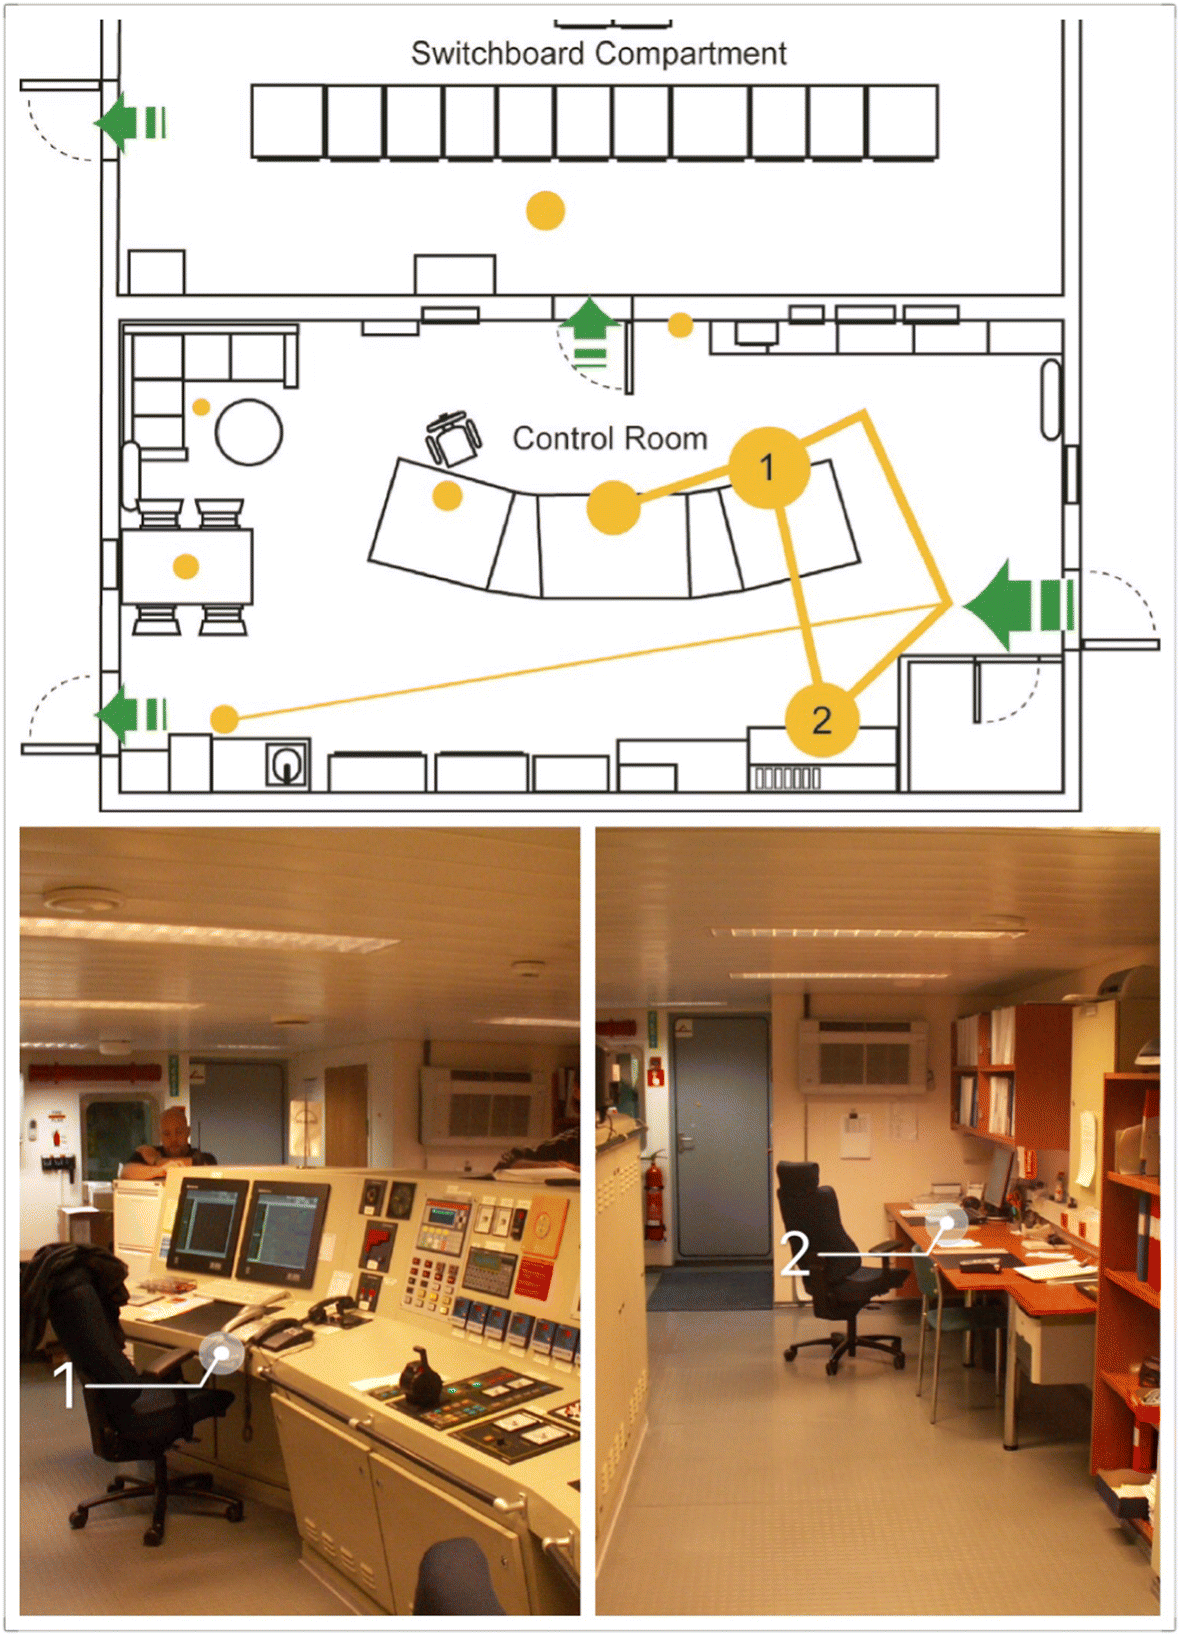 Managing unruly technologies in the engine control room